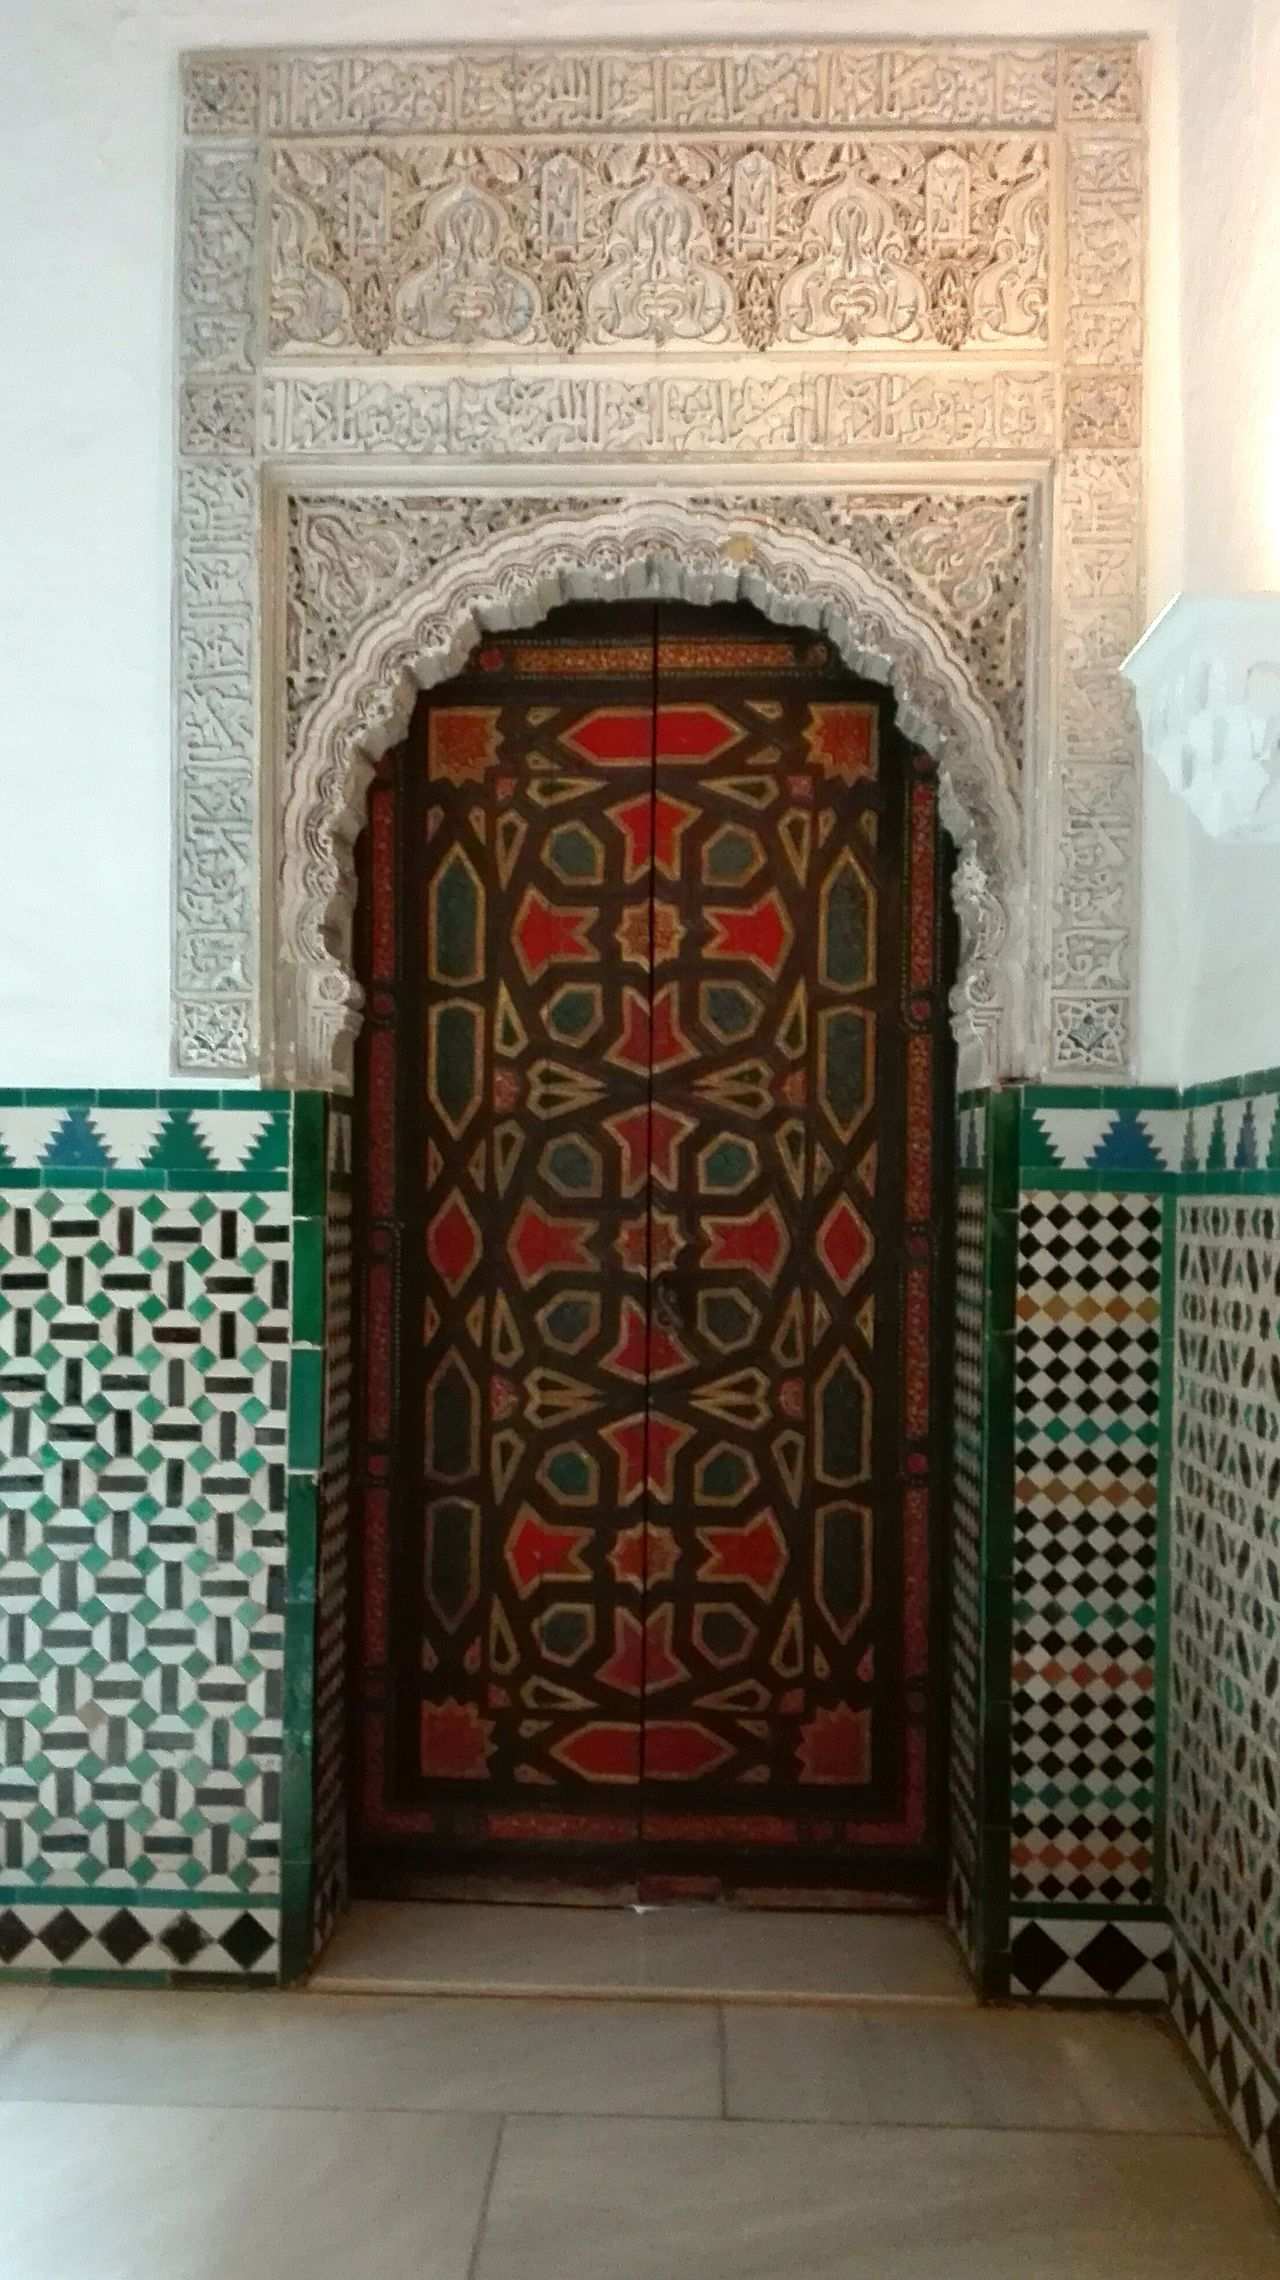 Door Doors Lover Doorsworldwide Doorcollector Doors From The Past Door With Story Doorporn Seville Sevilla Sevilla Spain Real Alcazar Realalcazar Realesalcazares